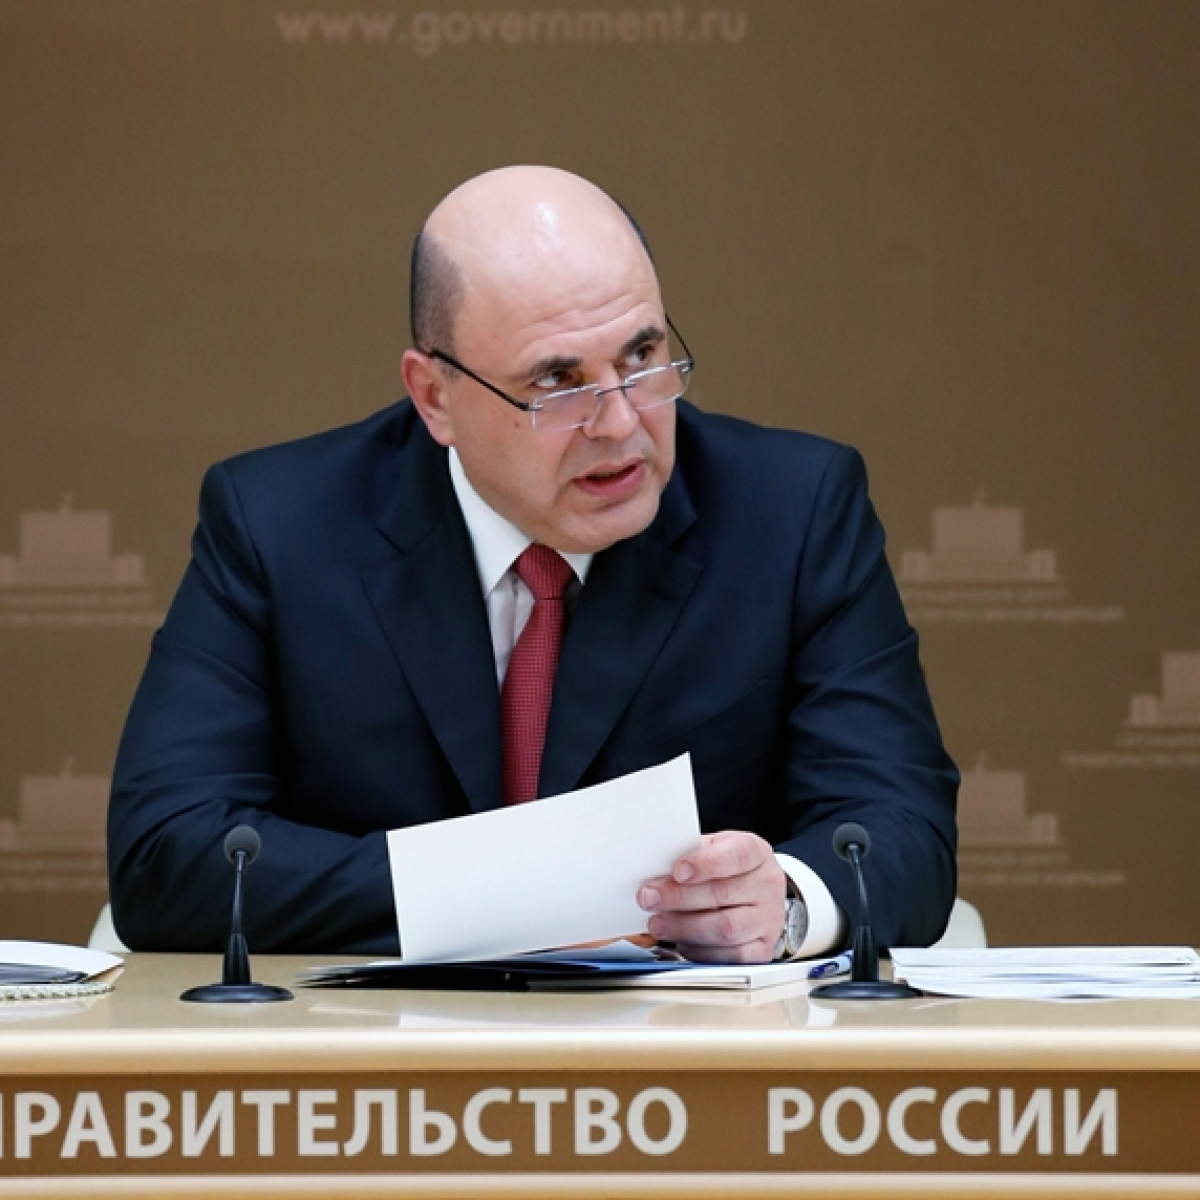 Russia announced new measures to props up ruble, oil producers